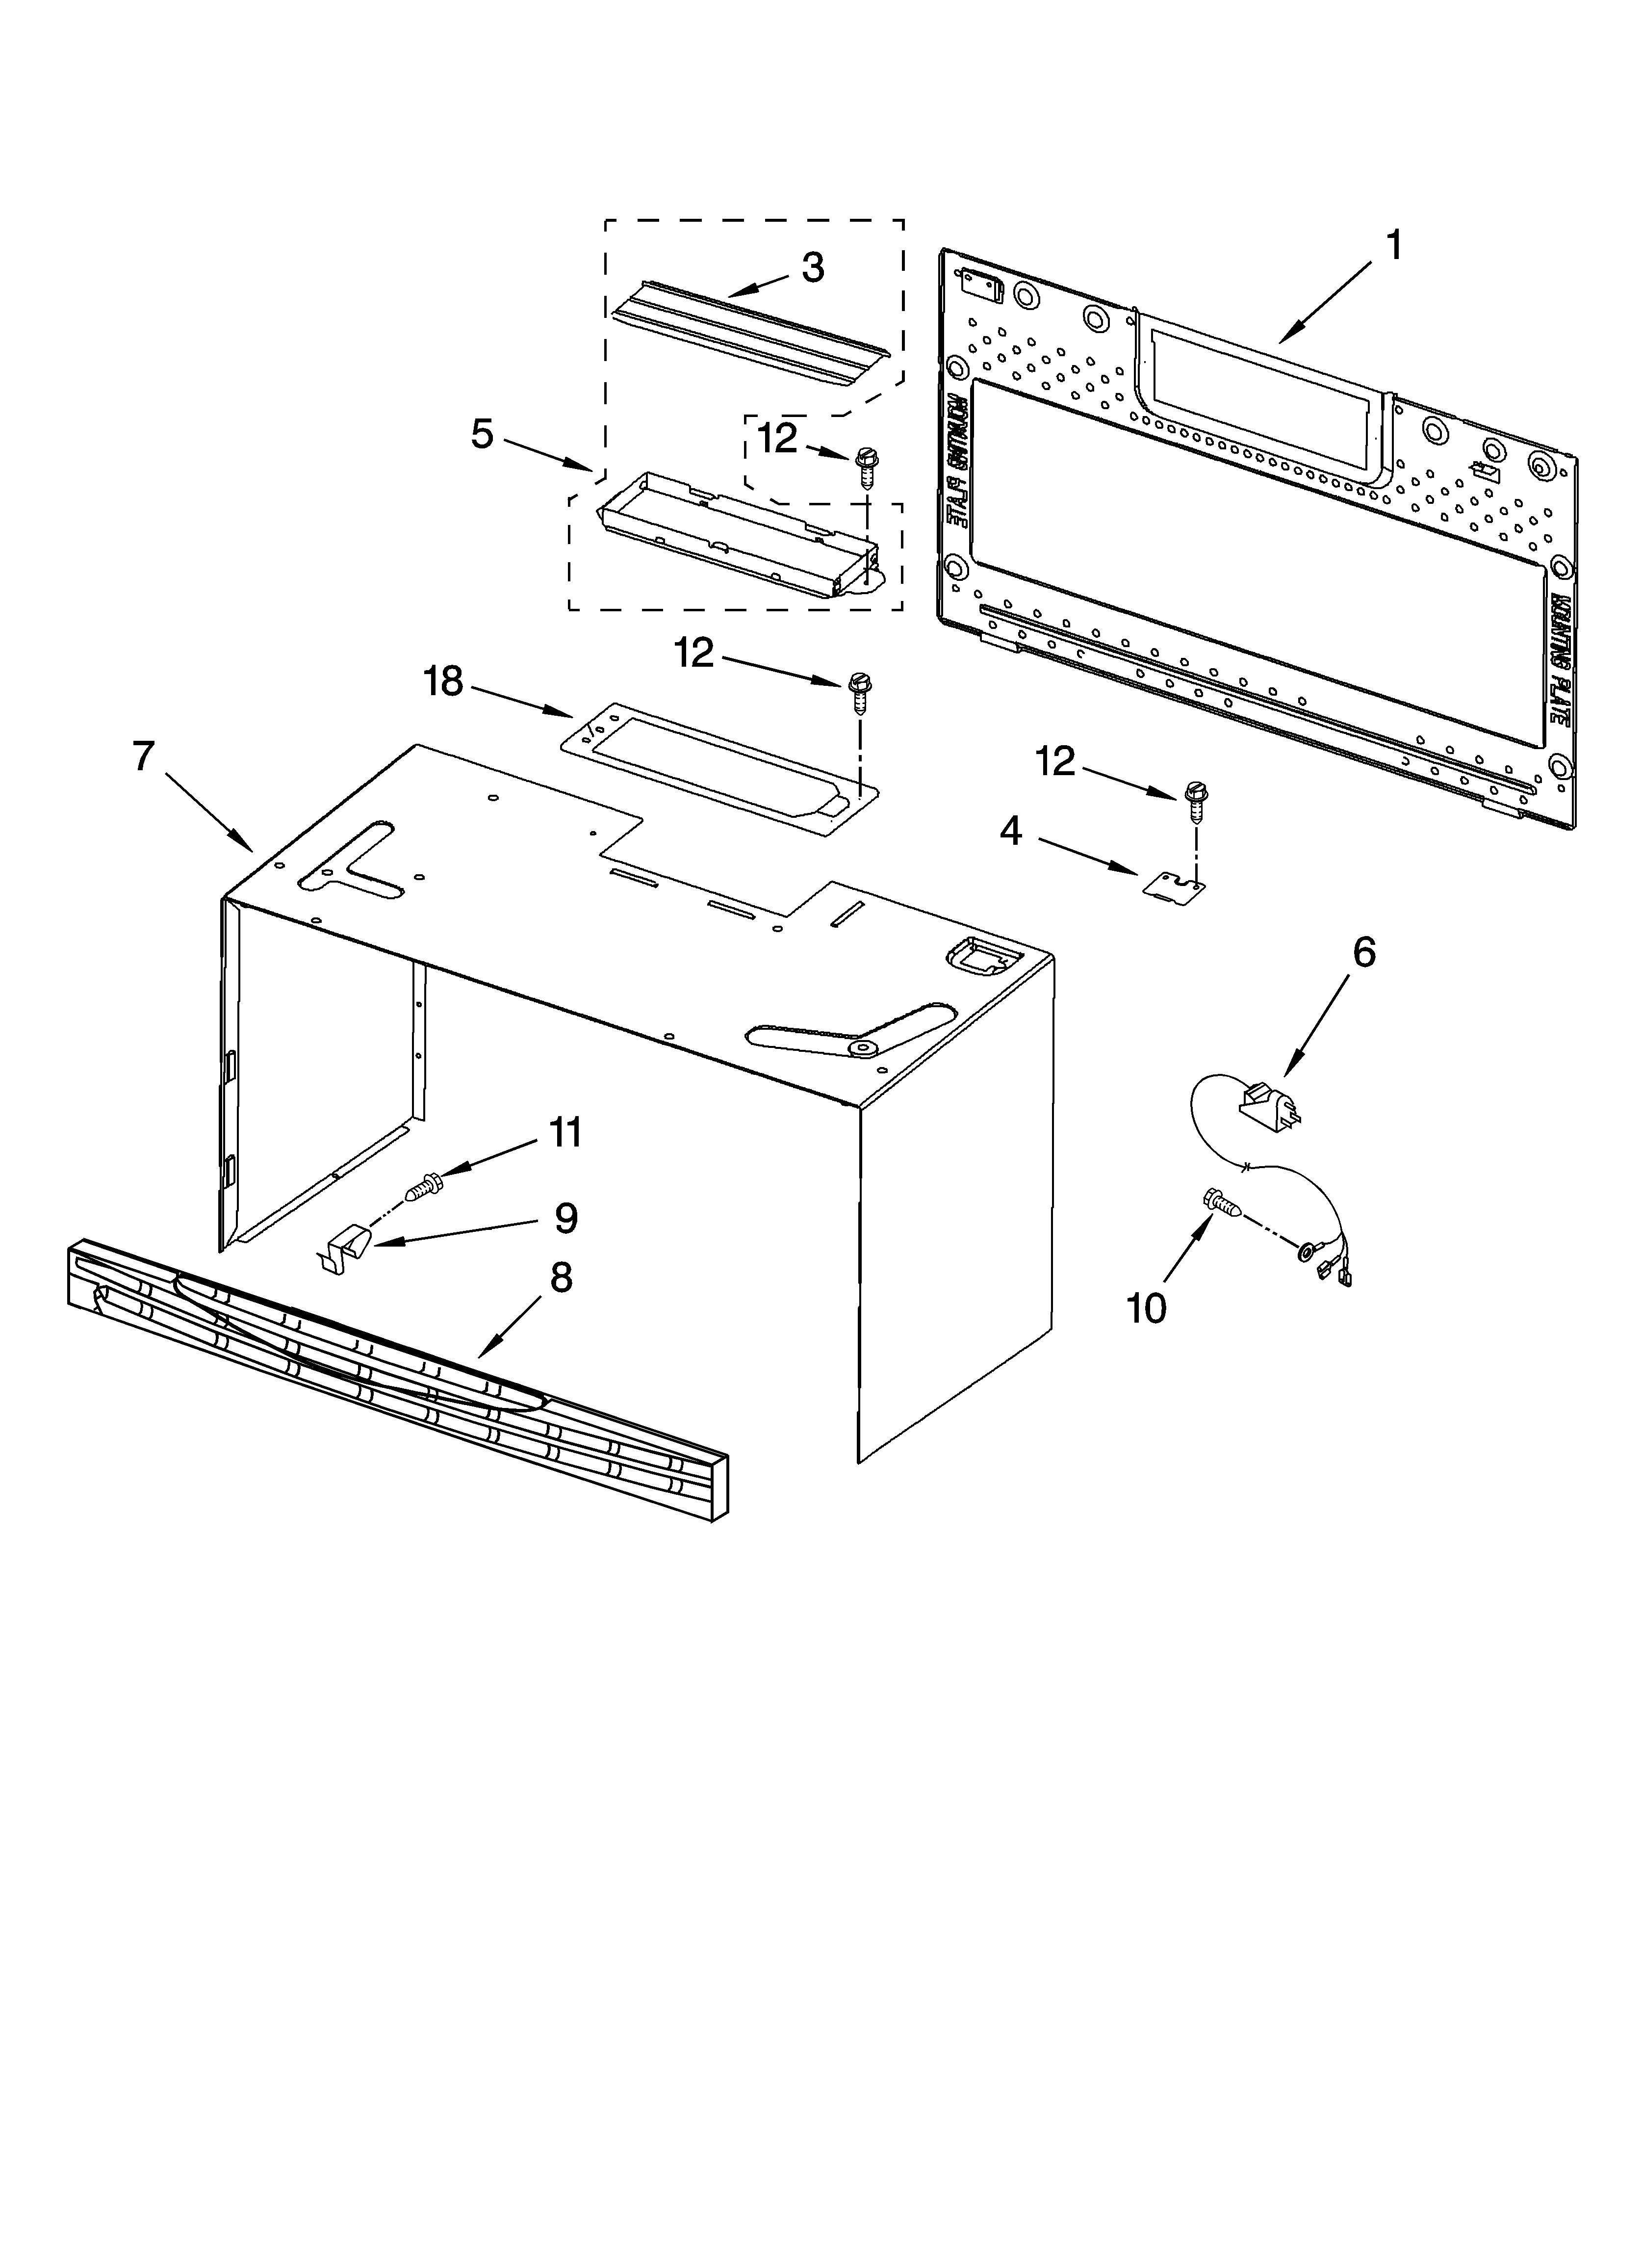 Whirlpool MH3184XPB3 cabinet and installation parts diagram